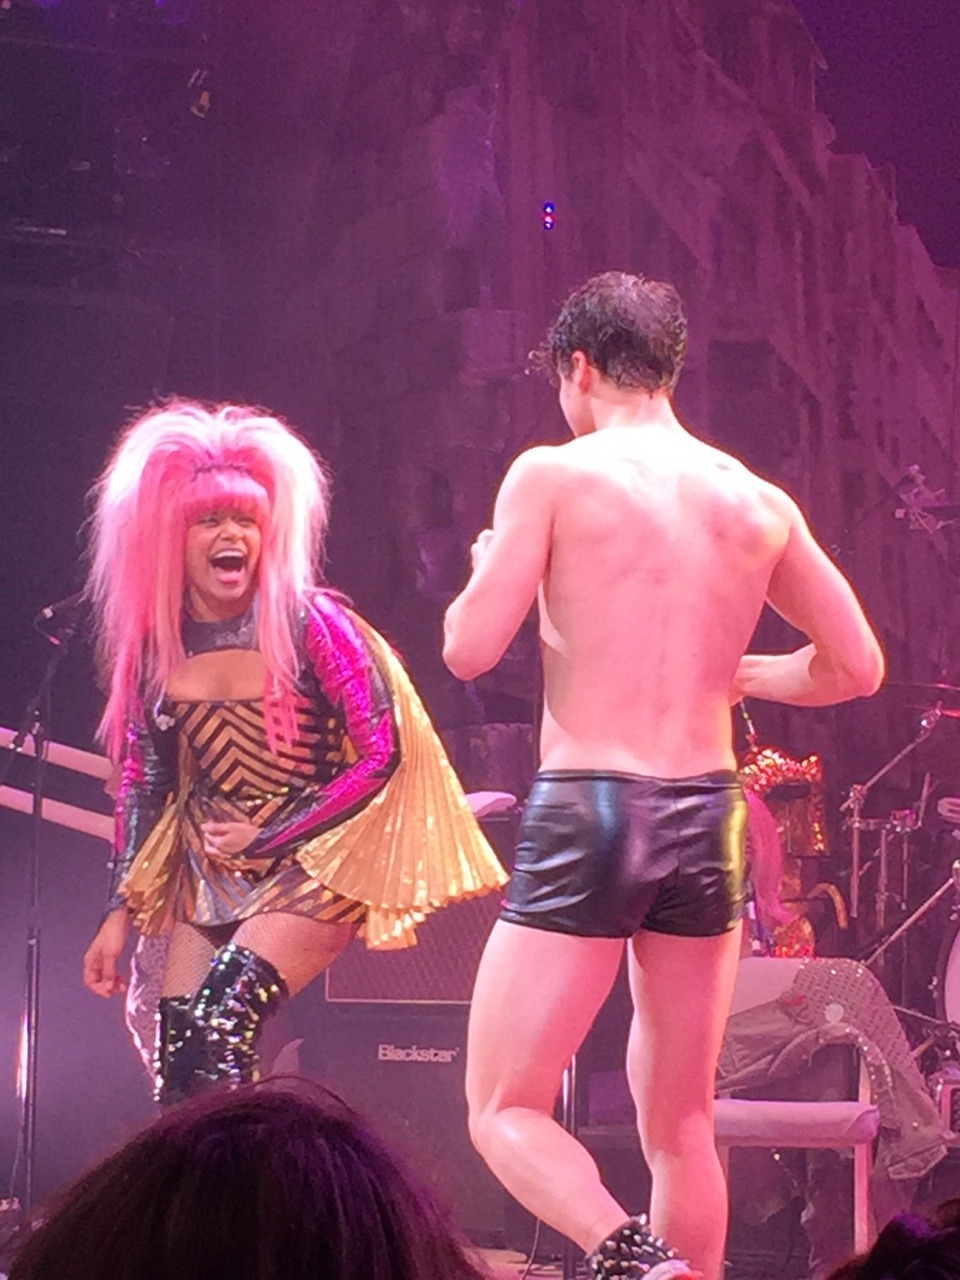 darrenishedwig - Pics and gifs of Darren in Hedwig and the Angry Inch on Broadway. Tumblr_nq6b14Y2Qk1qdtnwjo7_1280